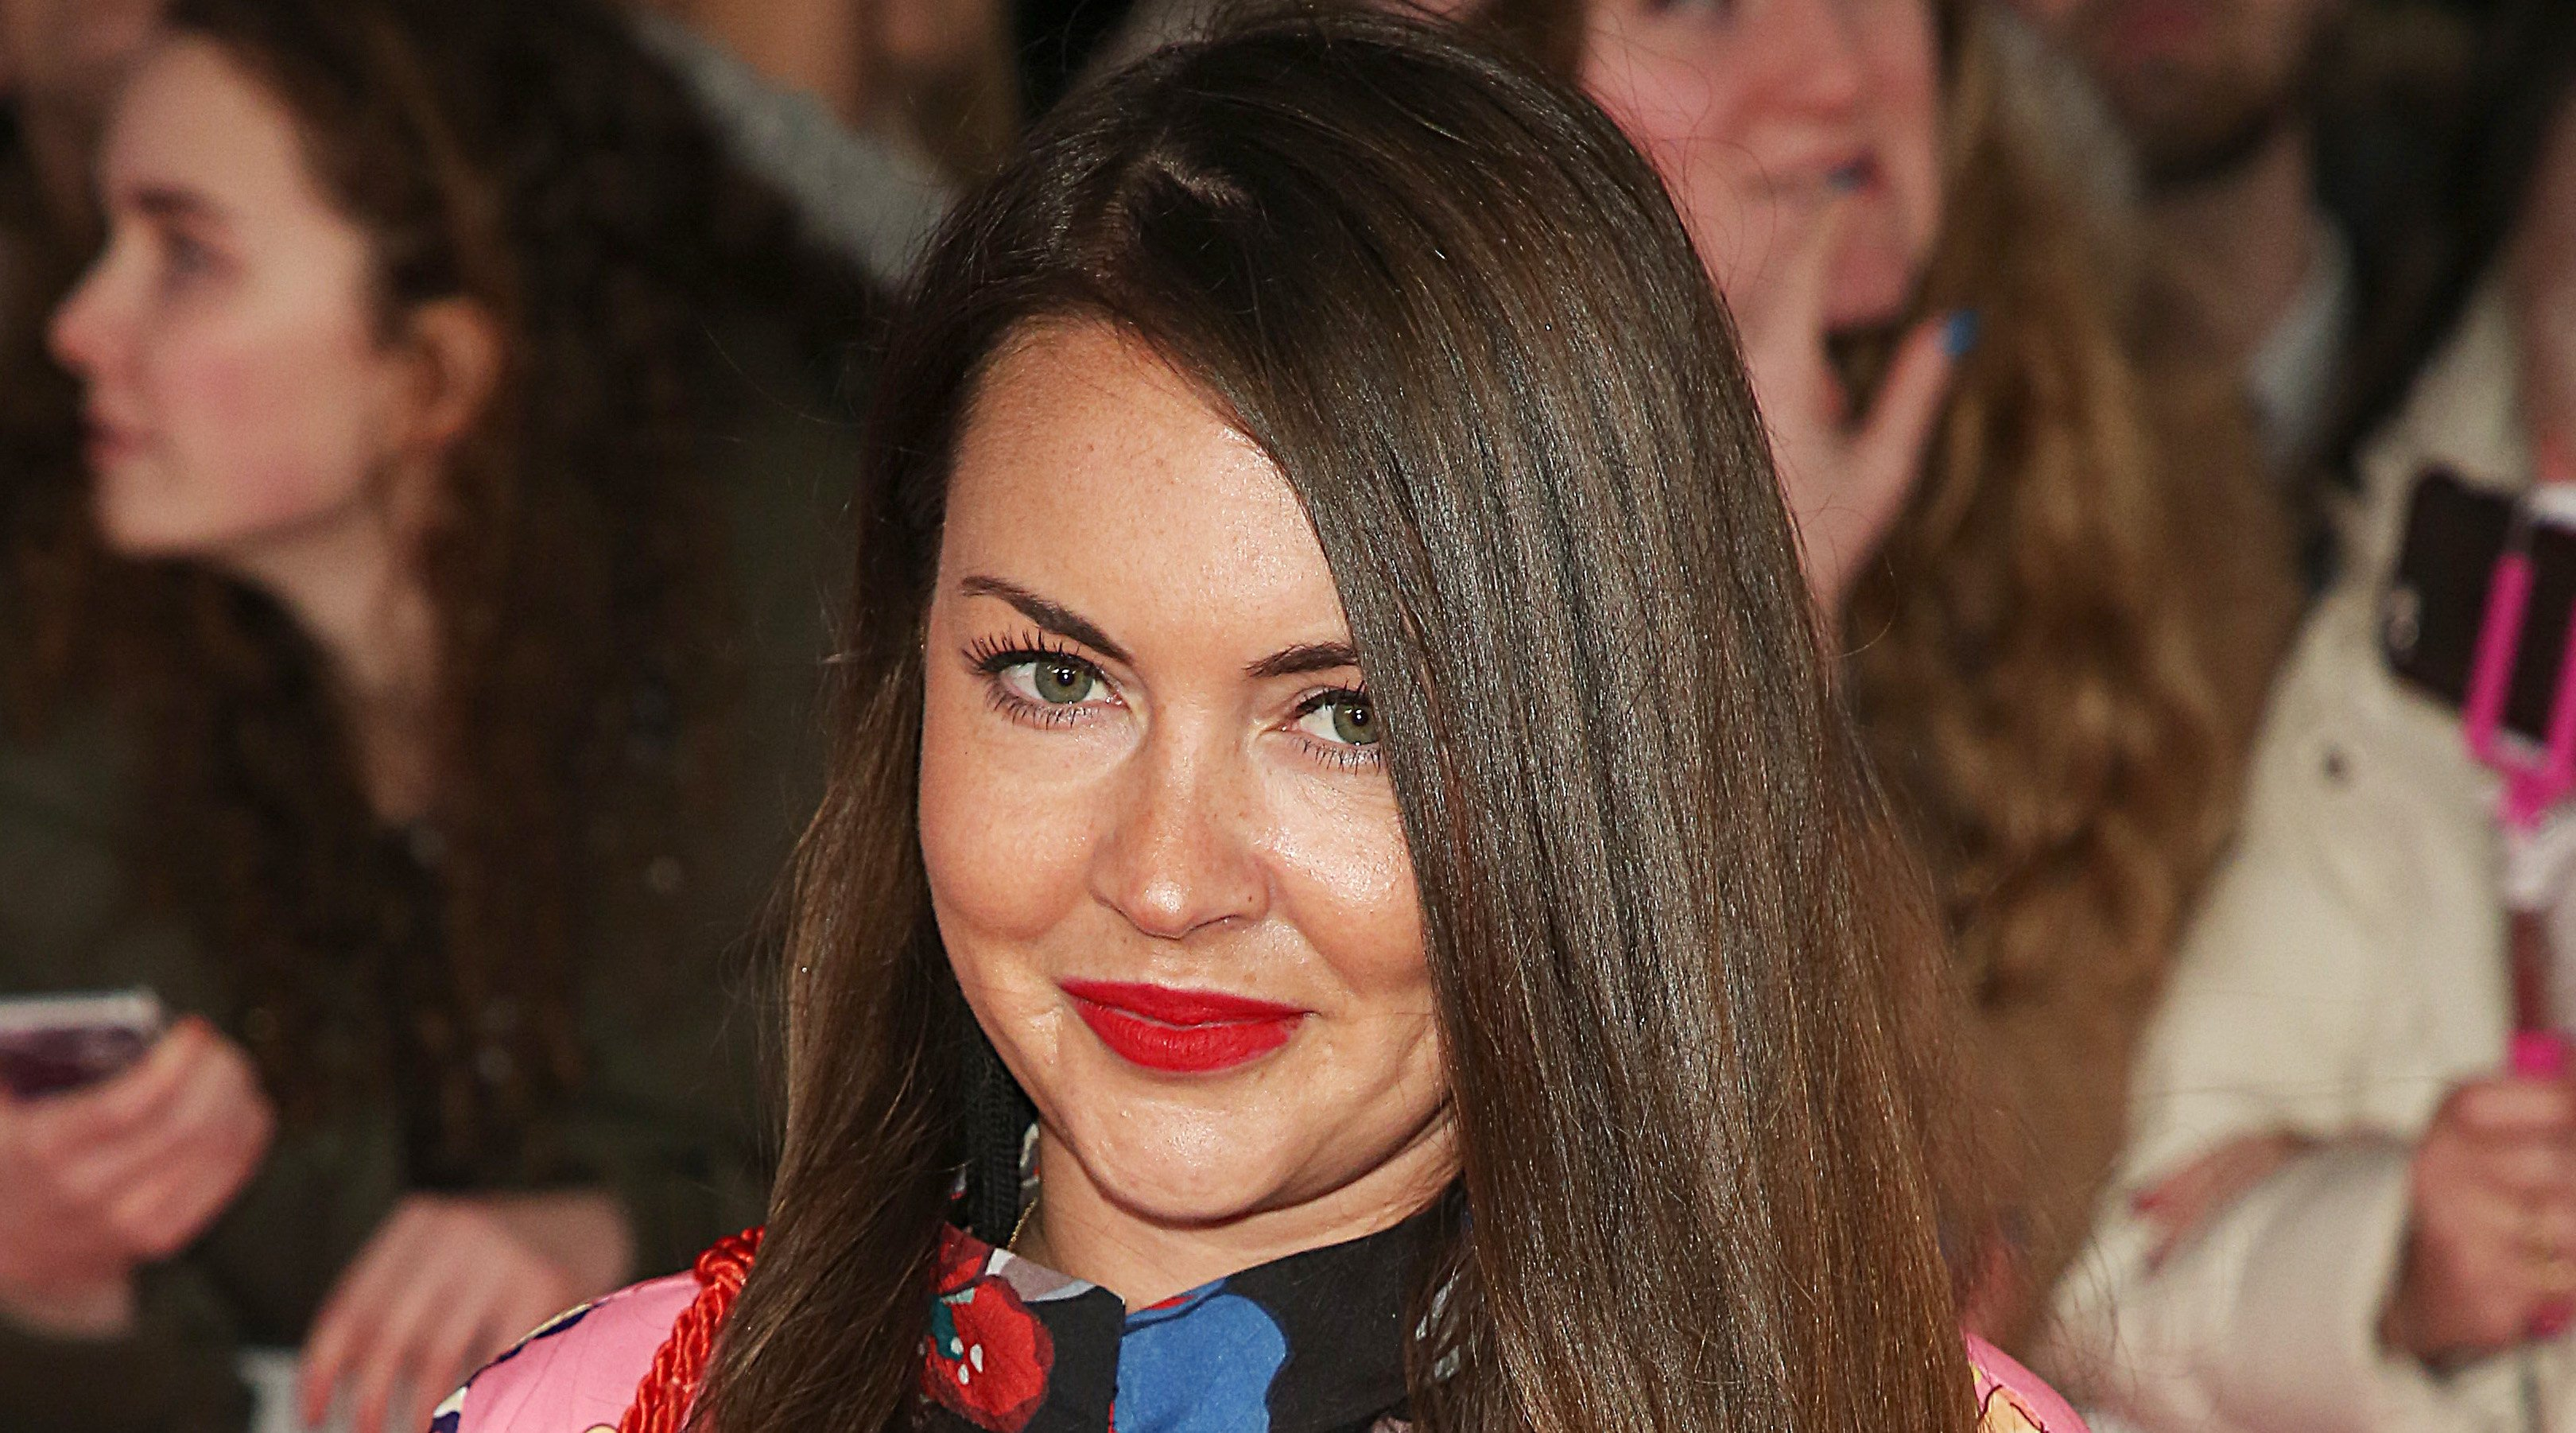 EastEnders' Lacey Turner shares 'adorable' new photo of daughter Dusty and new puppy Ned